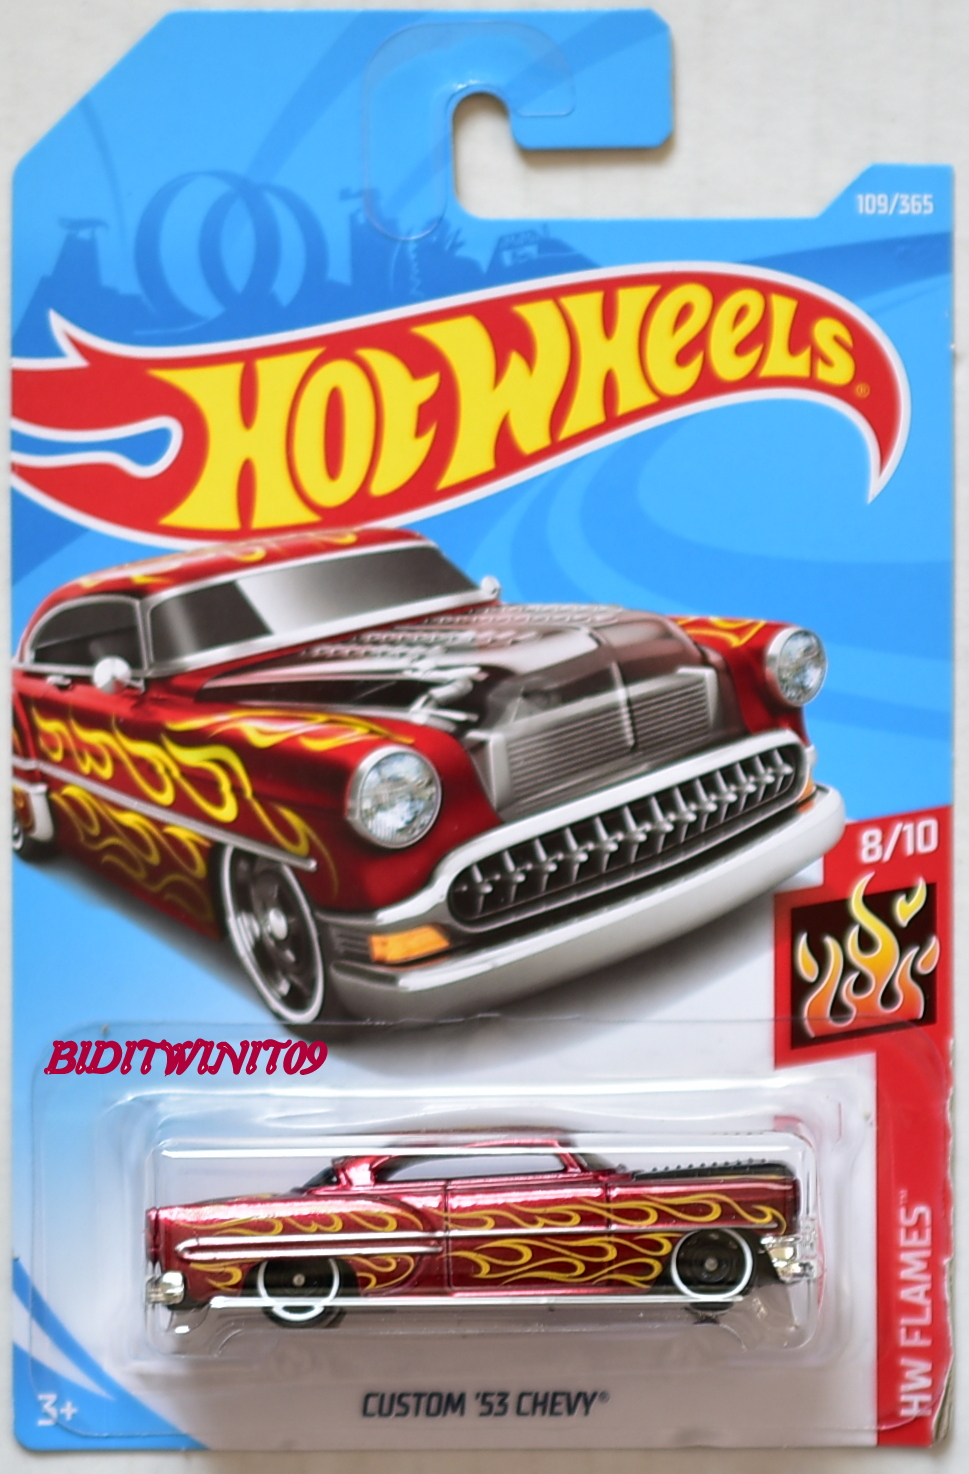 HOT WHEELS 2018 HW FLAMES CUSTOM '53 CHEVY RED